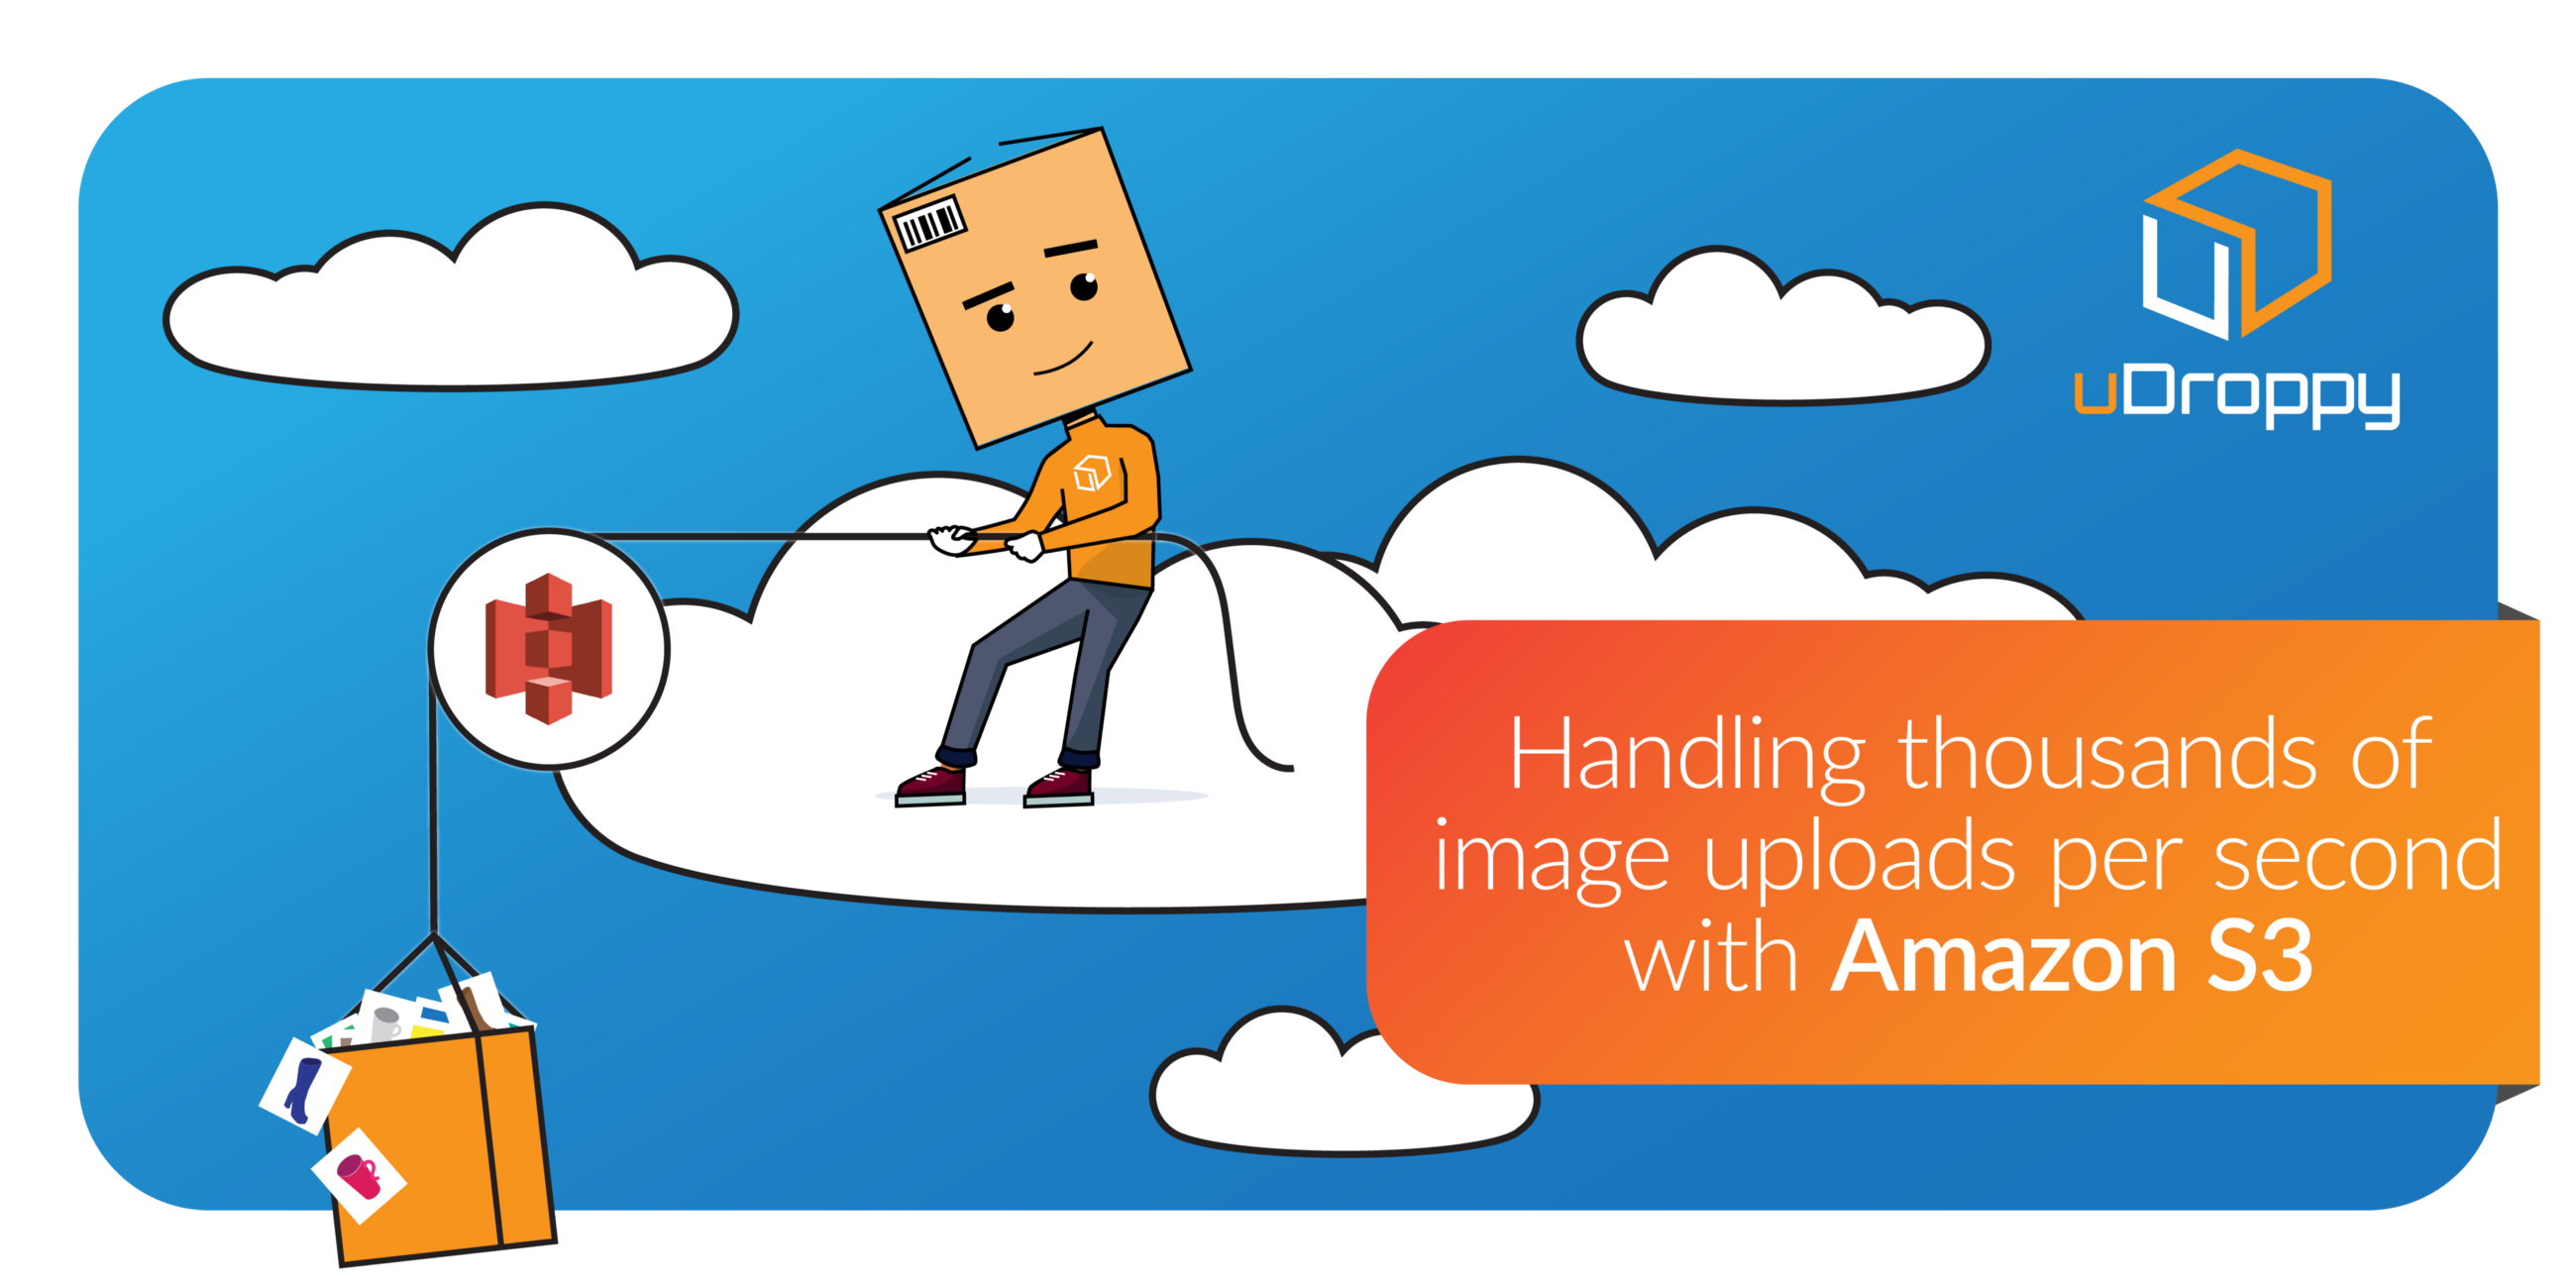 Handling thousands of image upload per second with Amazon S3